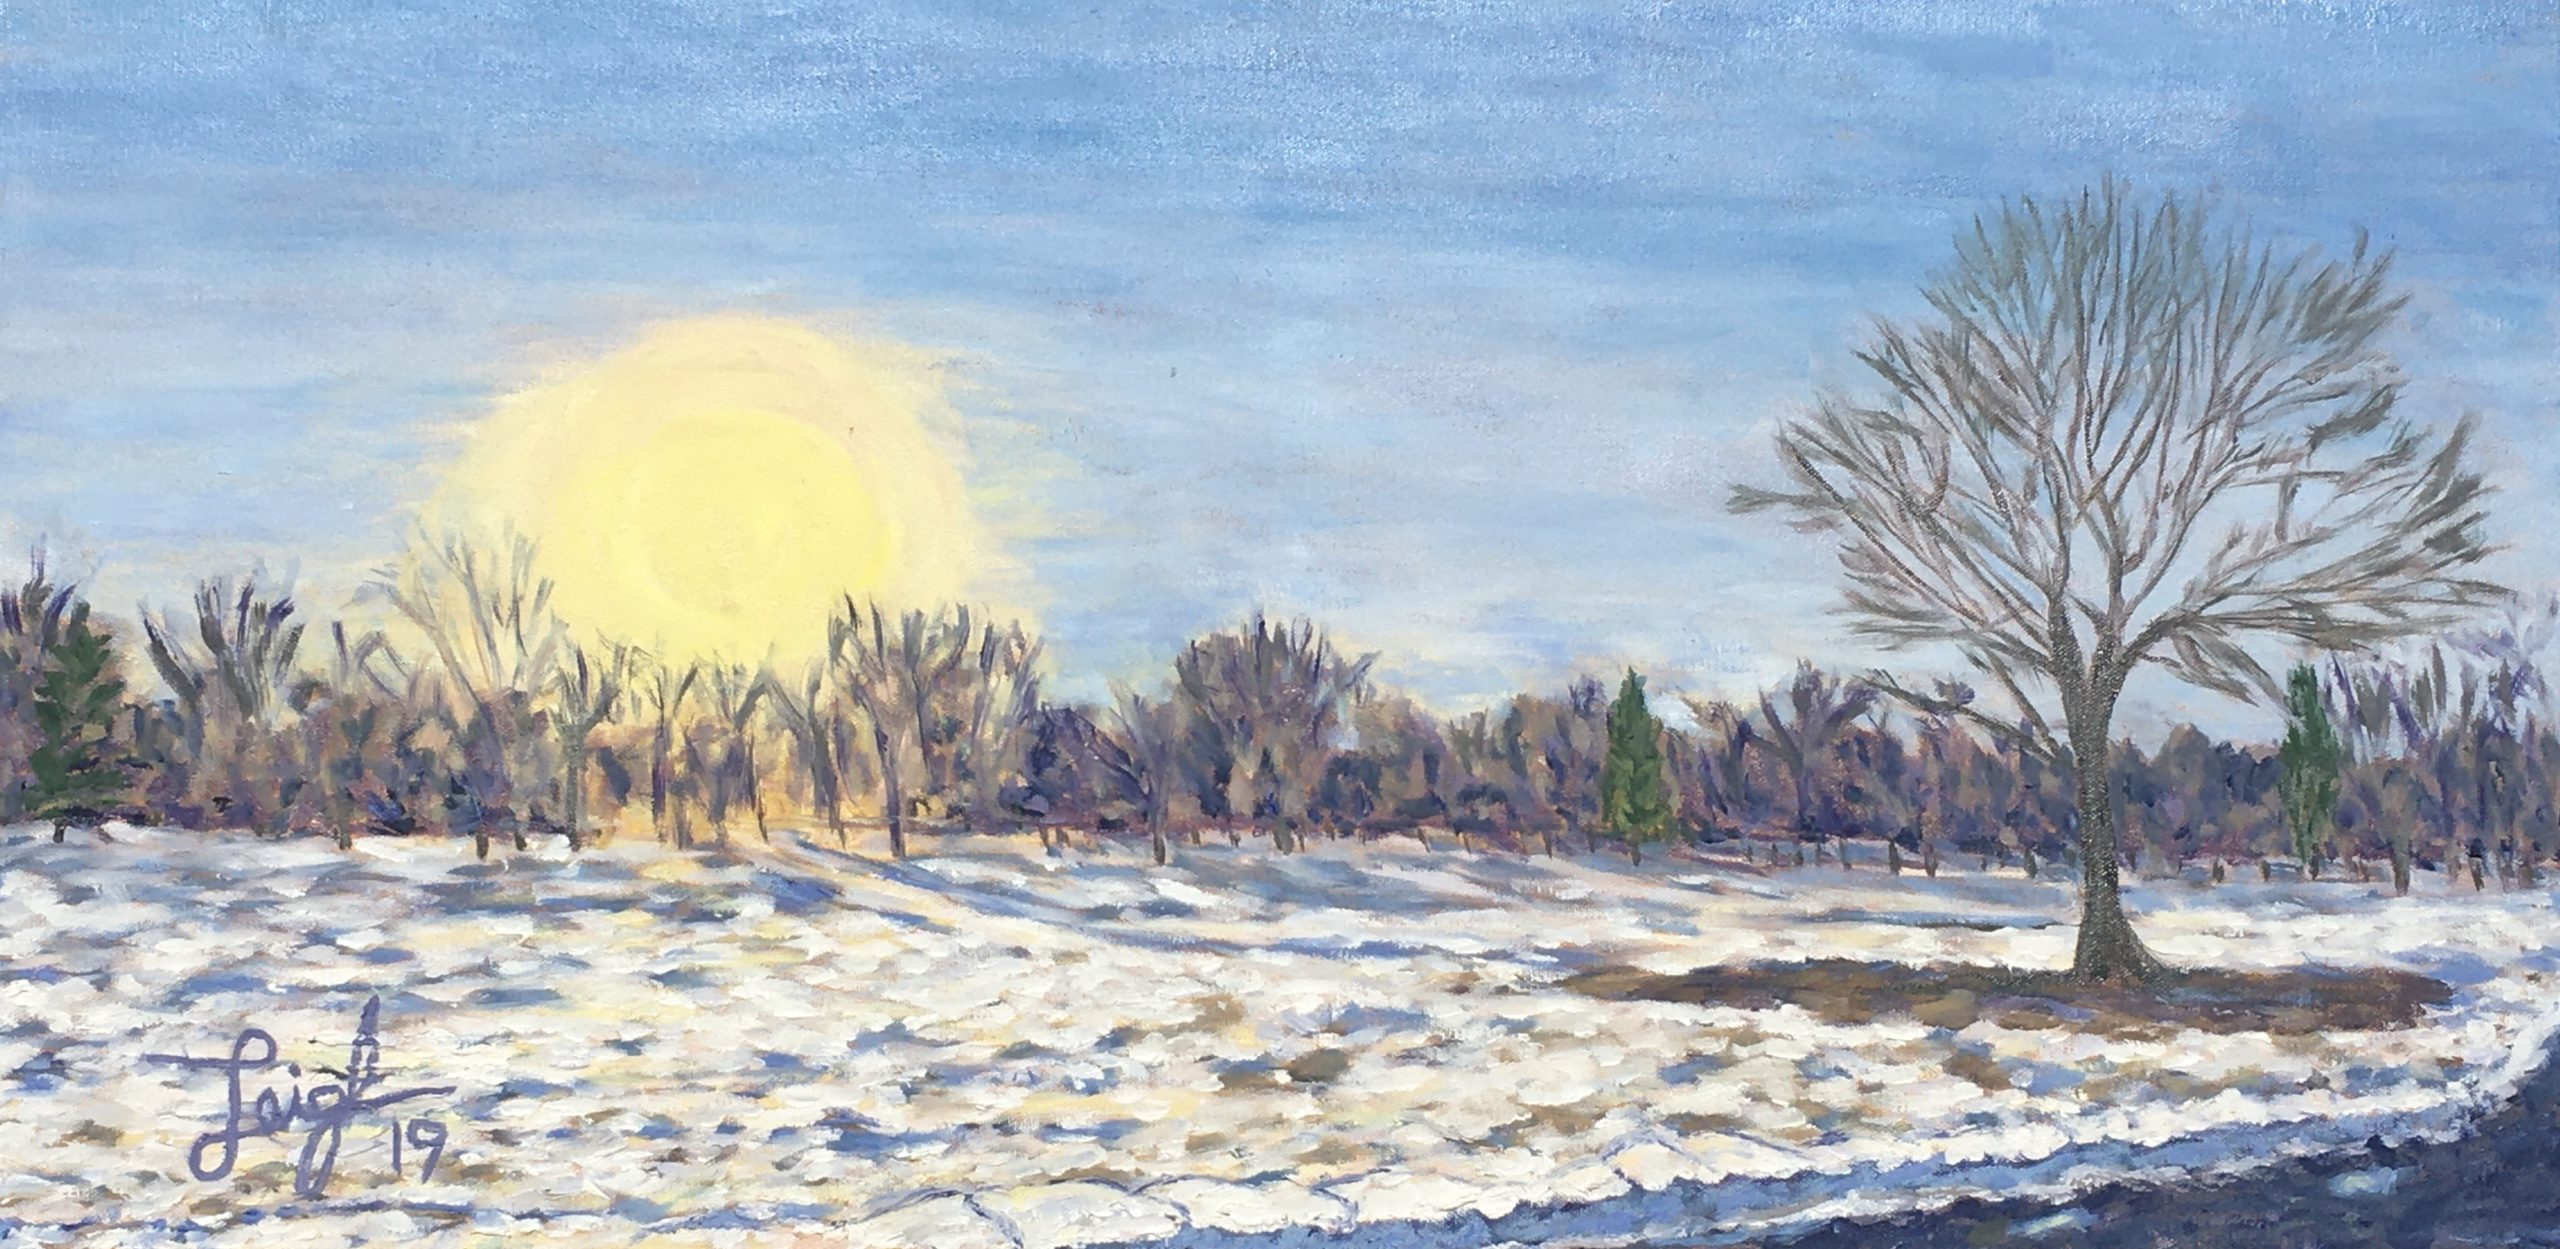 Central Park Denver (Snowy Sunset) 2019  •  30 x 15